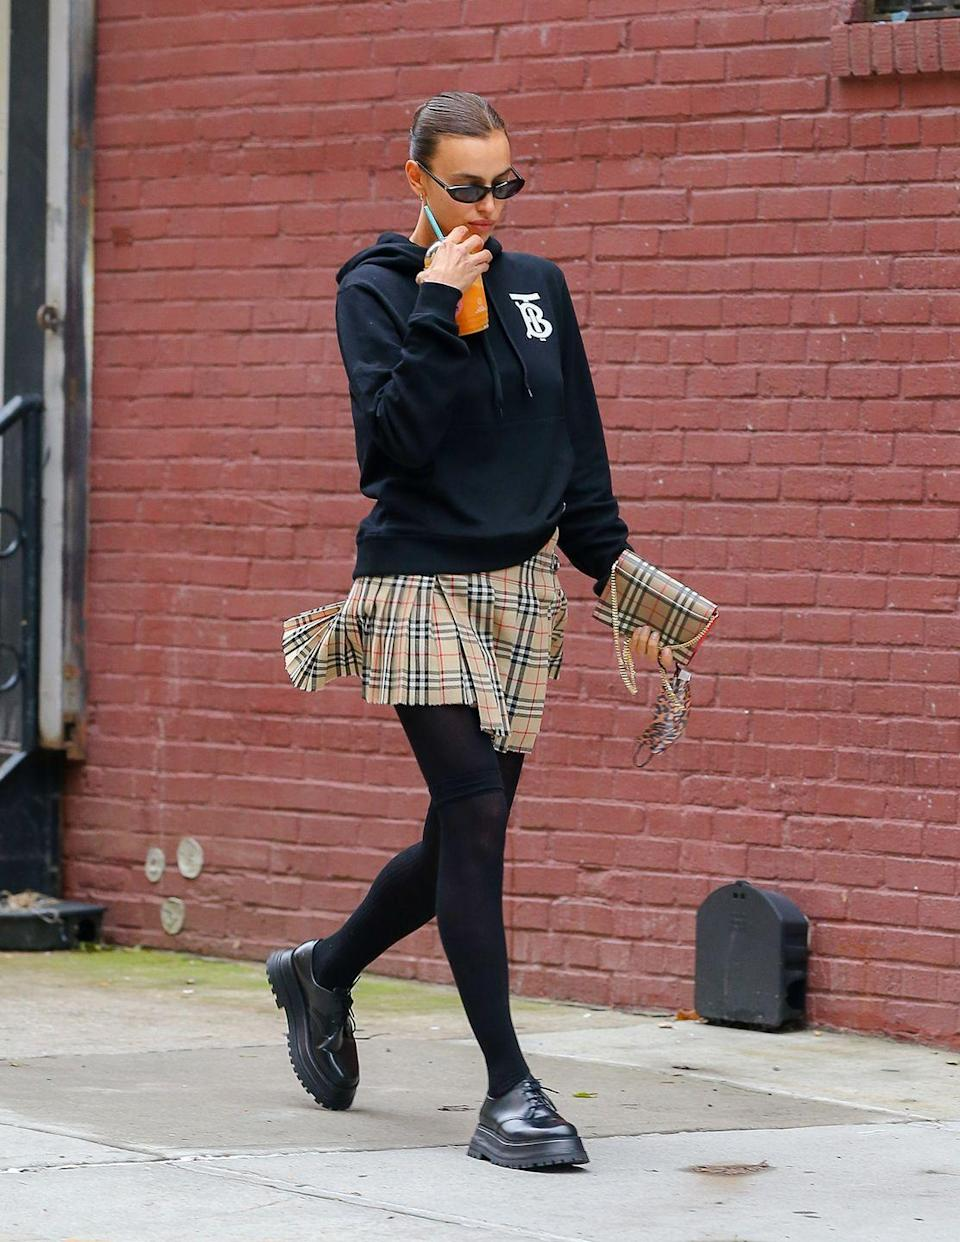 """<p>Irina Shayk wore head-to-toe Burberry to <a href=""""https://www.dailymail.co.uk/tvshowbiz/article-8839255/Irina-Shayk-keeps-low-profile-black-Burberry-hoodie-pleated-skirt.html"""" rel=""""nofollow noopener"""" target=""""_blank"""" data-ylk=""""slk:pick up"""" class=""""link rapid-noclick-resp"""">pick up</a> her and ex-husband Bradley Cooper's daughter, Lea De Seine, in New York.</p><p>The 34-year-old model paired her Burberry hoodie, with black lace-ups, a checked kilt and <a href=""""https://go.redirectingat.com?id=127X1599956&url=https%3A%2F%2Fwww.farfetch.com%2Fuk%2Fshopping%2Fwomen%2Fburberry-check-print-mini-bag-item-14696049.aspx&sref=https%3A%2F%2Fwww.elle.com%2Fuk%2Ffashion%2Fcelebrity-style%2Fg34359706%2Firina-shayk-style-file%2F"""" rel=""""nofollow noopener"""" target=""""_blank"""" data-ylk=""""slk:matching bag"""" class=""""link rapid-noclick-resp"""">matching bag</a> for the perfect back-to-school look.</p><p>This isn't the first time Shayk has repped the Nova-check so whole-heartedly, having previously <a href=""""https://www.elle.com/uk/fashion/a28080681/irina-shayk-lea-de-seine-shayk-cooper-matching-burberry/"""" rel=""""nofollow noopener"""" target=""""_blank"""" data-ylk=""""slk:twinned with daughter De Seine"""" class=""""link rapid-noclick-resp"""">twinned with daughter De Seine</a> in matching heritage check dresses from the British brand. </p><p><a class=""""link rapid-noclick-resp"""" href=""""https://go.redirectingat.com?id=127X1599956&url=https%3A%2F%2Fwww.farfetch.com%2Fuk%2Fshopping%2Fwomen%2Fburberry-vintage-check-mini-kilt-item-14603409.aspx&sref=https%3A%2F%2Fwww.elle.com%2Fuk%2Ffashion%2Fcelebrity-style%2Fg34359706%2Firina-shayk-style-file%2F"""" rel=""""nofollow noopener"""" target=""""_blank"""" data-ylk=""""slk:SHOP IRINA'S BURBERRY KILT NOW"""">SHOP IRINA'S BURBERRY KILT NOW</a></p><p><a class=""""link rapid-noclick-resp"""" href=""""https://go.redirectingat.com?id=127X1599956&url=https%3A%2F%2Fwww.farfetch.com%2Fuk%2Fshopping%2Fwomen%2Fburberry-lace-up-derby-shoes-item-14727234.aspx&sref=https%3A%2F%2Fwww.elle.com%2Fuk%2Ffashion%2Fcelebrity-style%2F"""